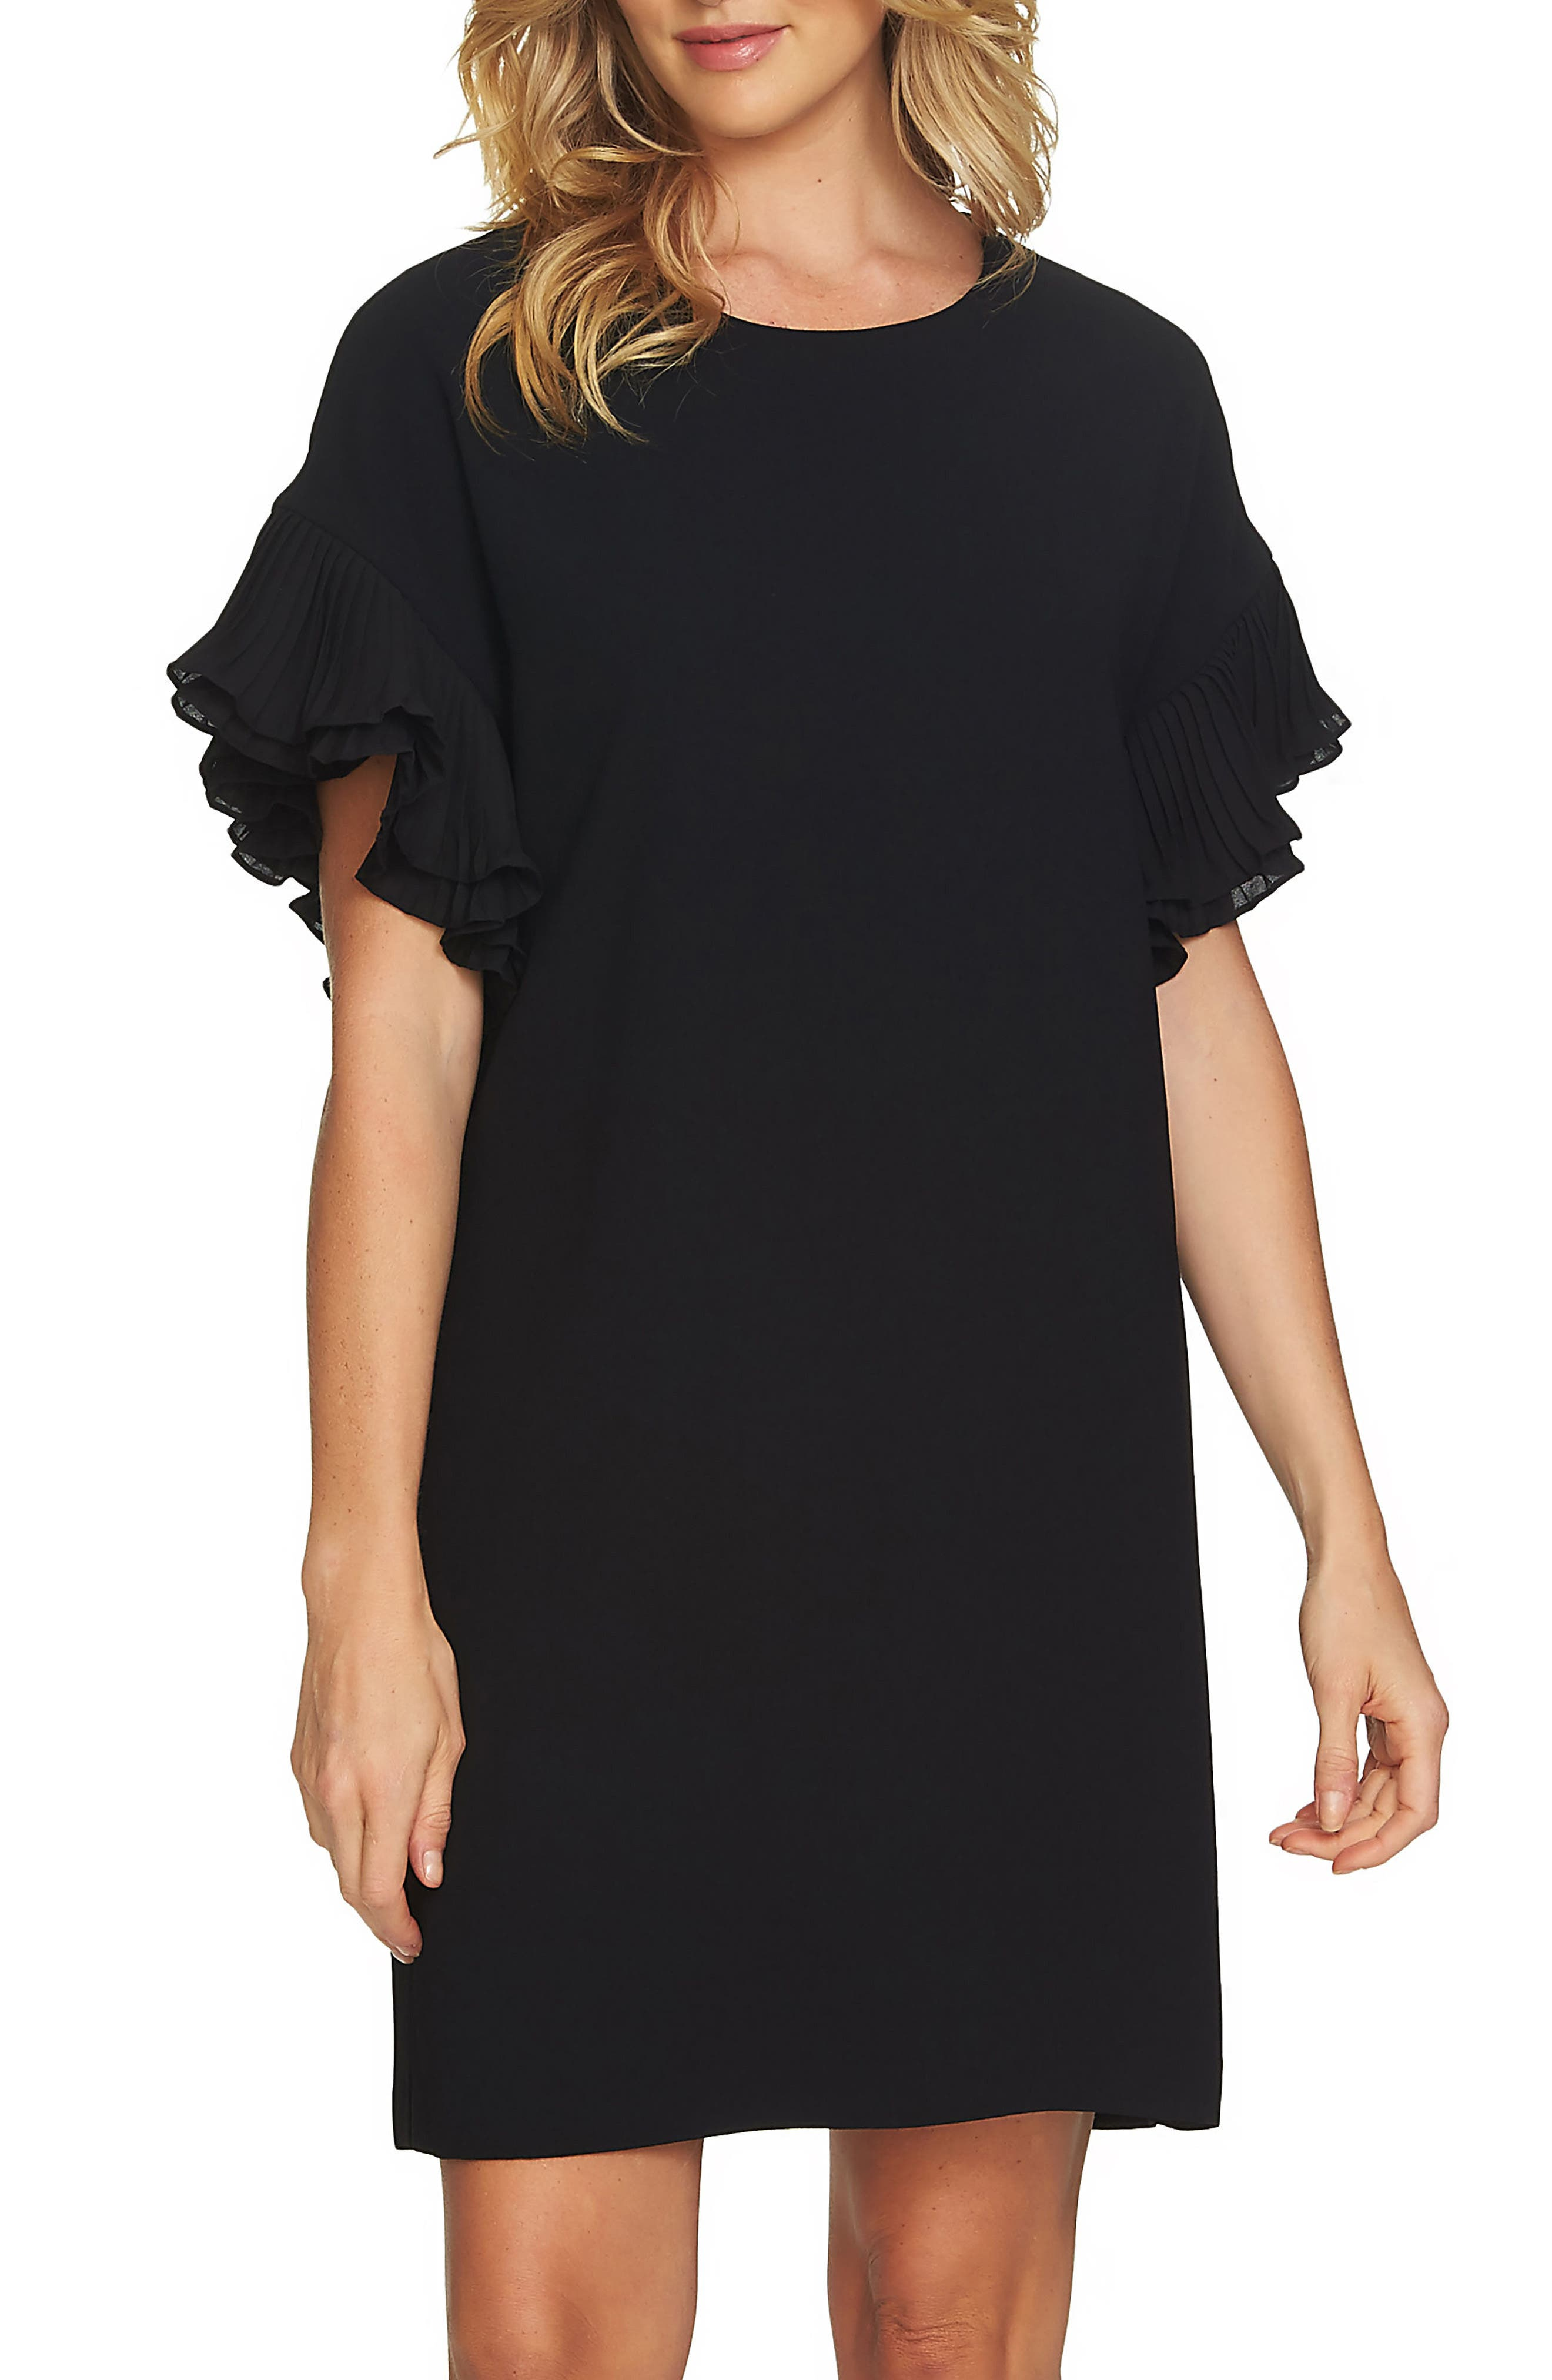 Tiered Pleated Crepe Shift Dress,                             Main thumbnail 1, color,                             RICH BLACK